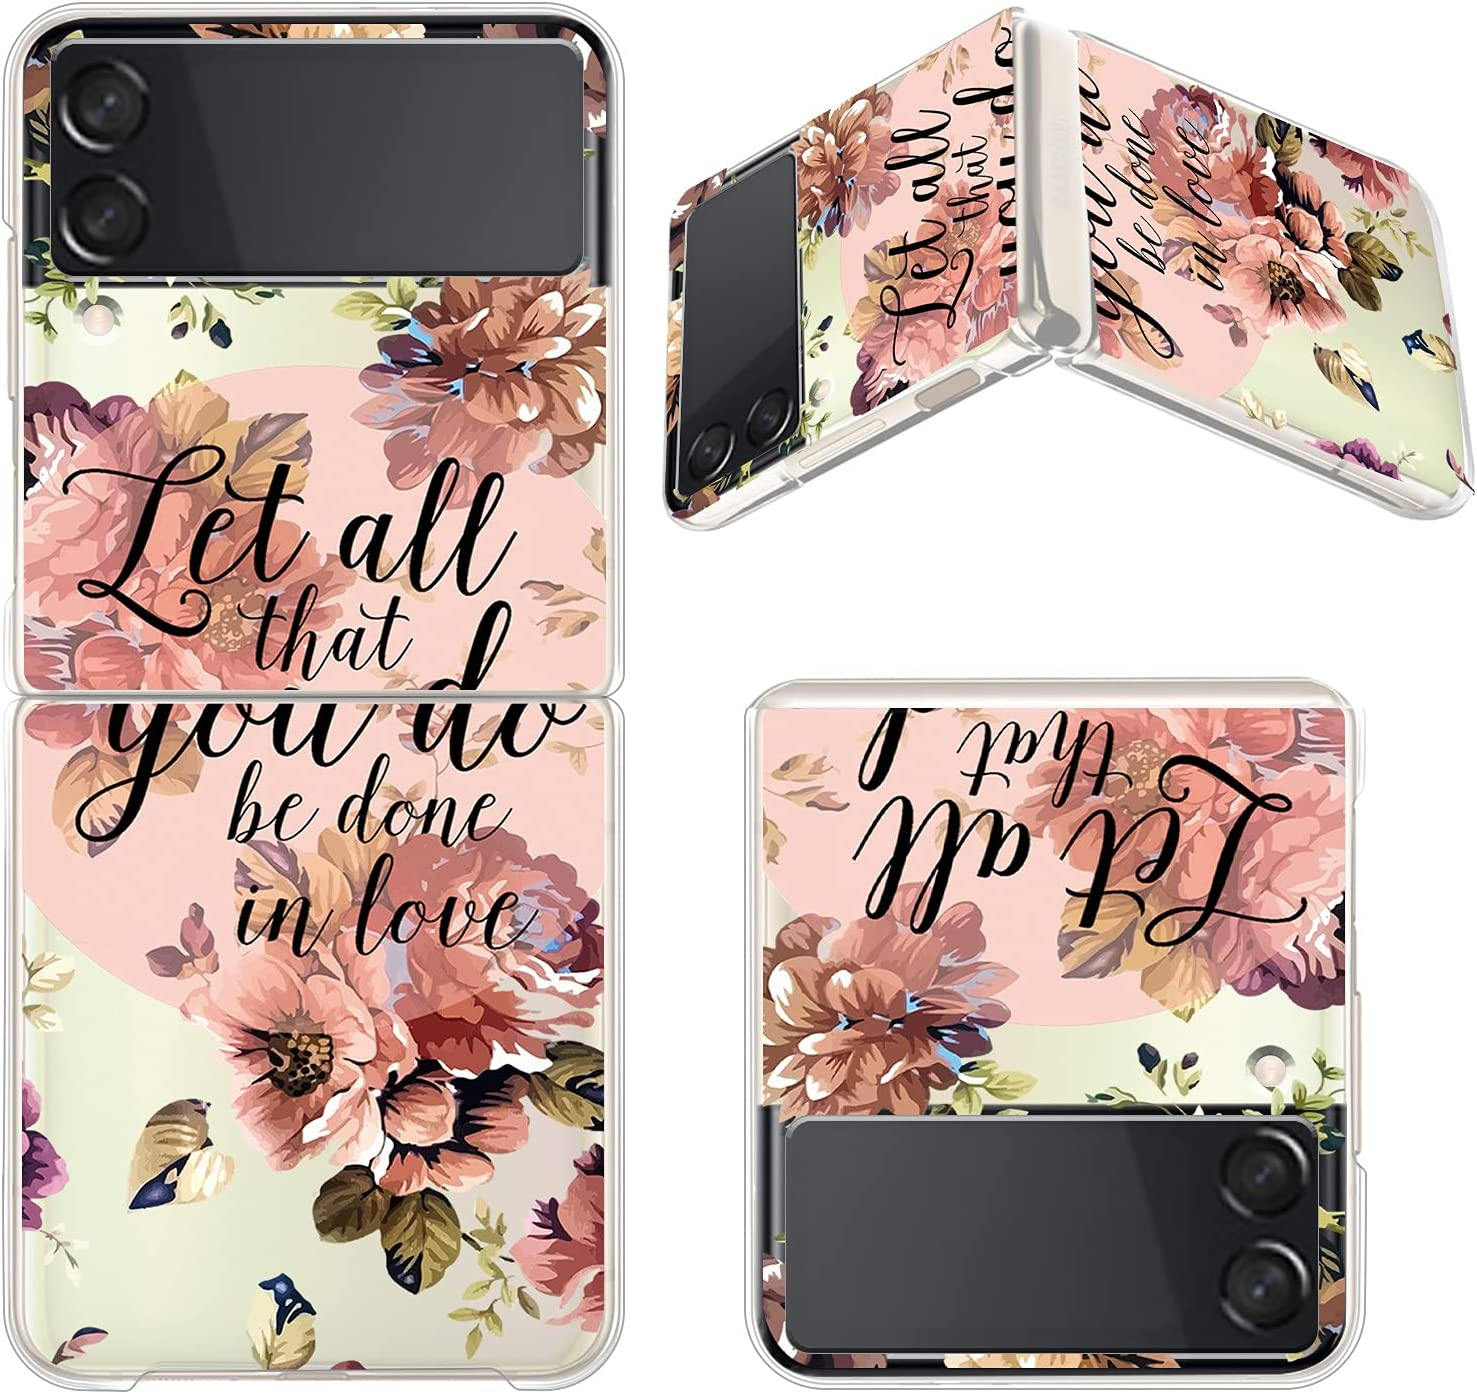 Gukalong Clear Case for Samsung Galaxy Z Flip 3 5G Full Body Shockproof Protective Hard Bumper Folding Cover Slim Thin Bible Verse Flowers Quotes Design Wireless Charging Case for Galaxy Z Flip 3 2021